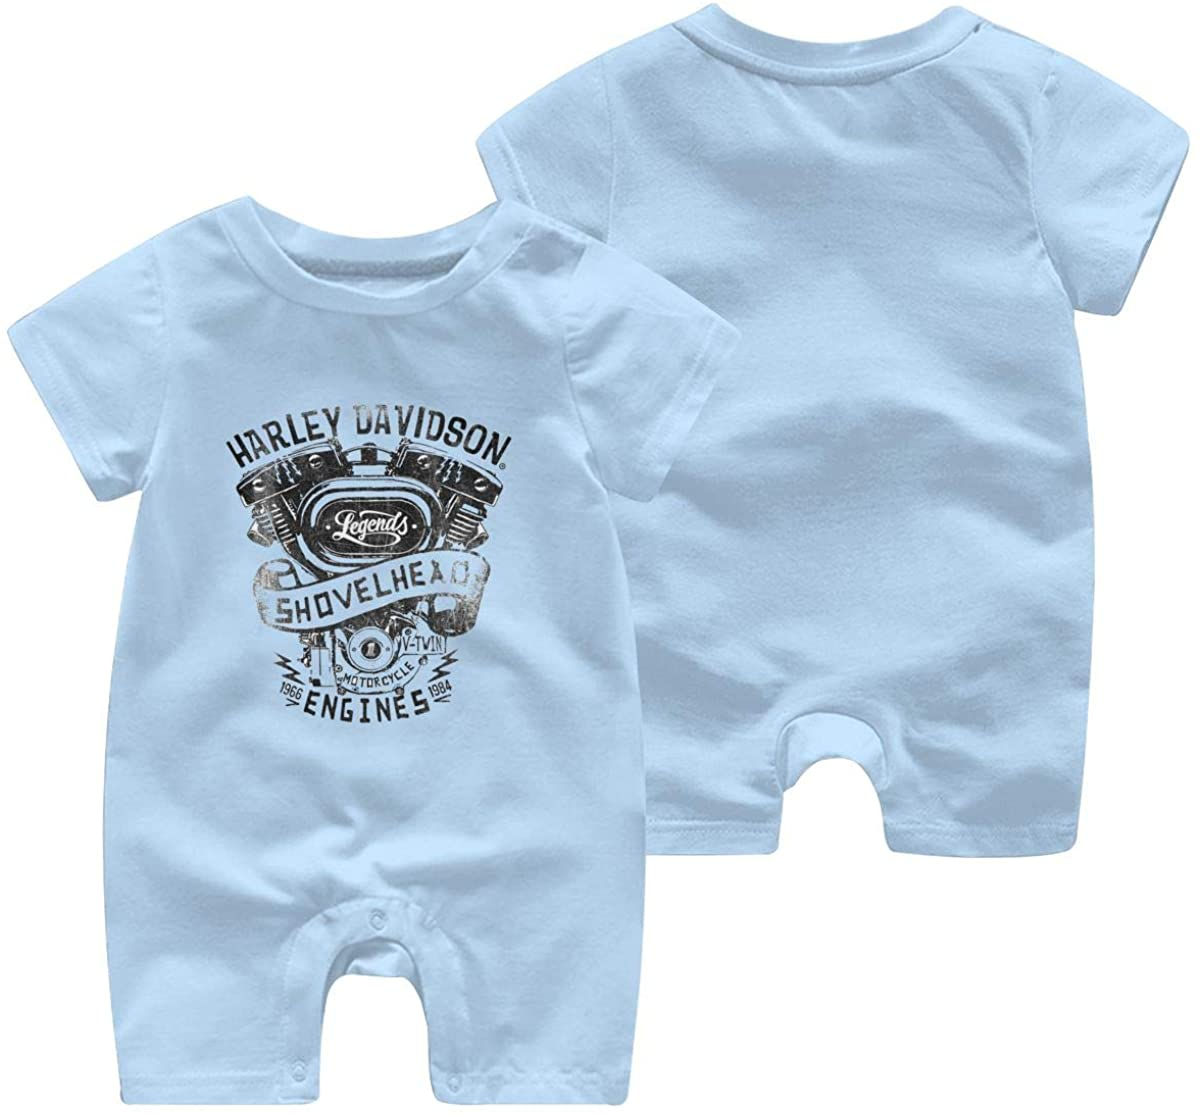 Harley Davidson One Piece Outfits Baby Solid Color Rompers with Button Kids Short Sleeve Playsuit Jumpsuits Cotton Clothing 18 Months Sky Blue